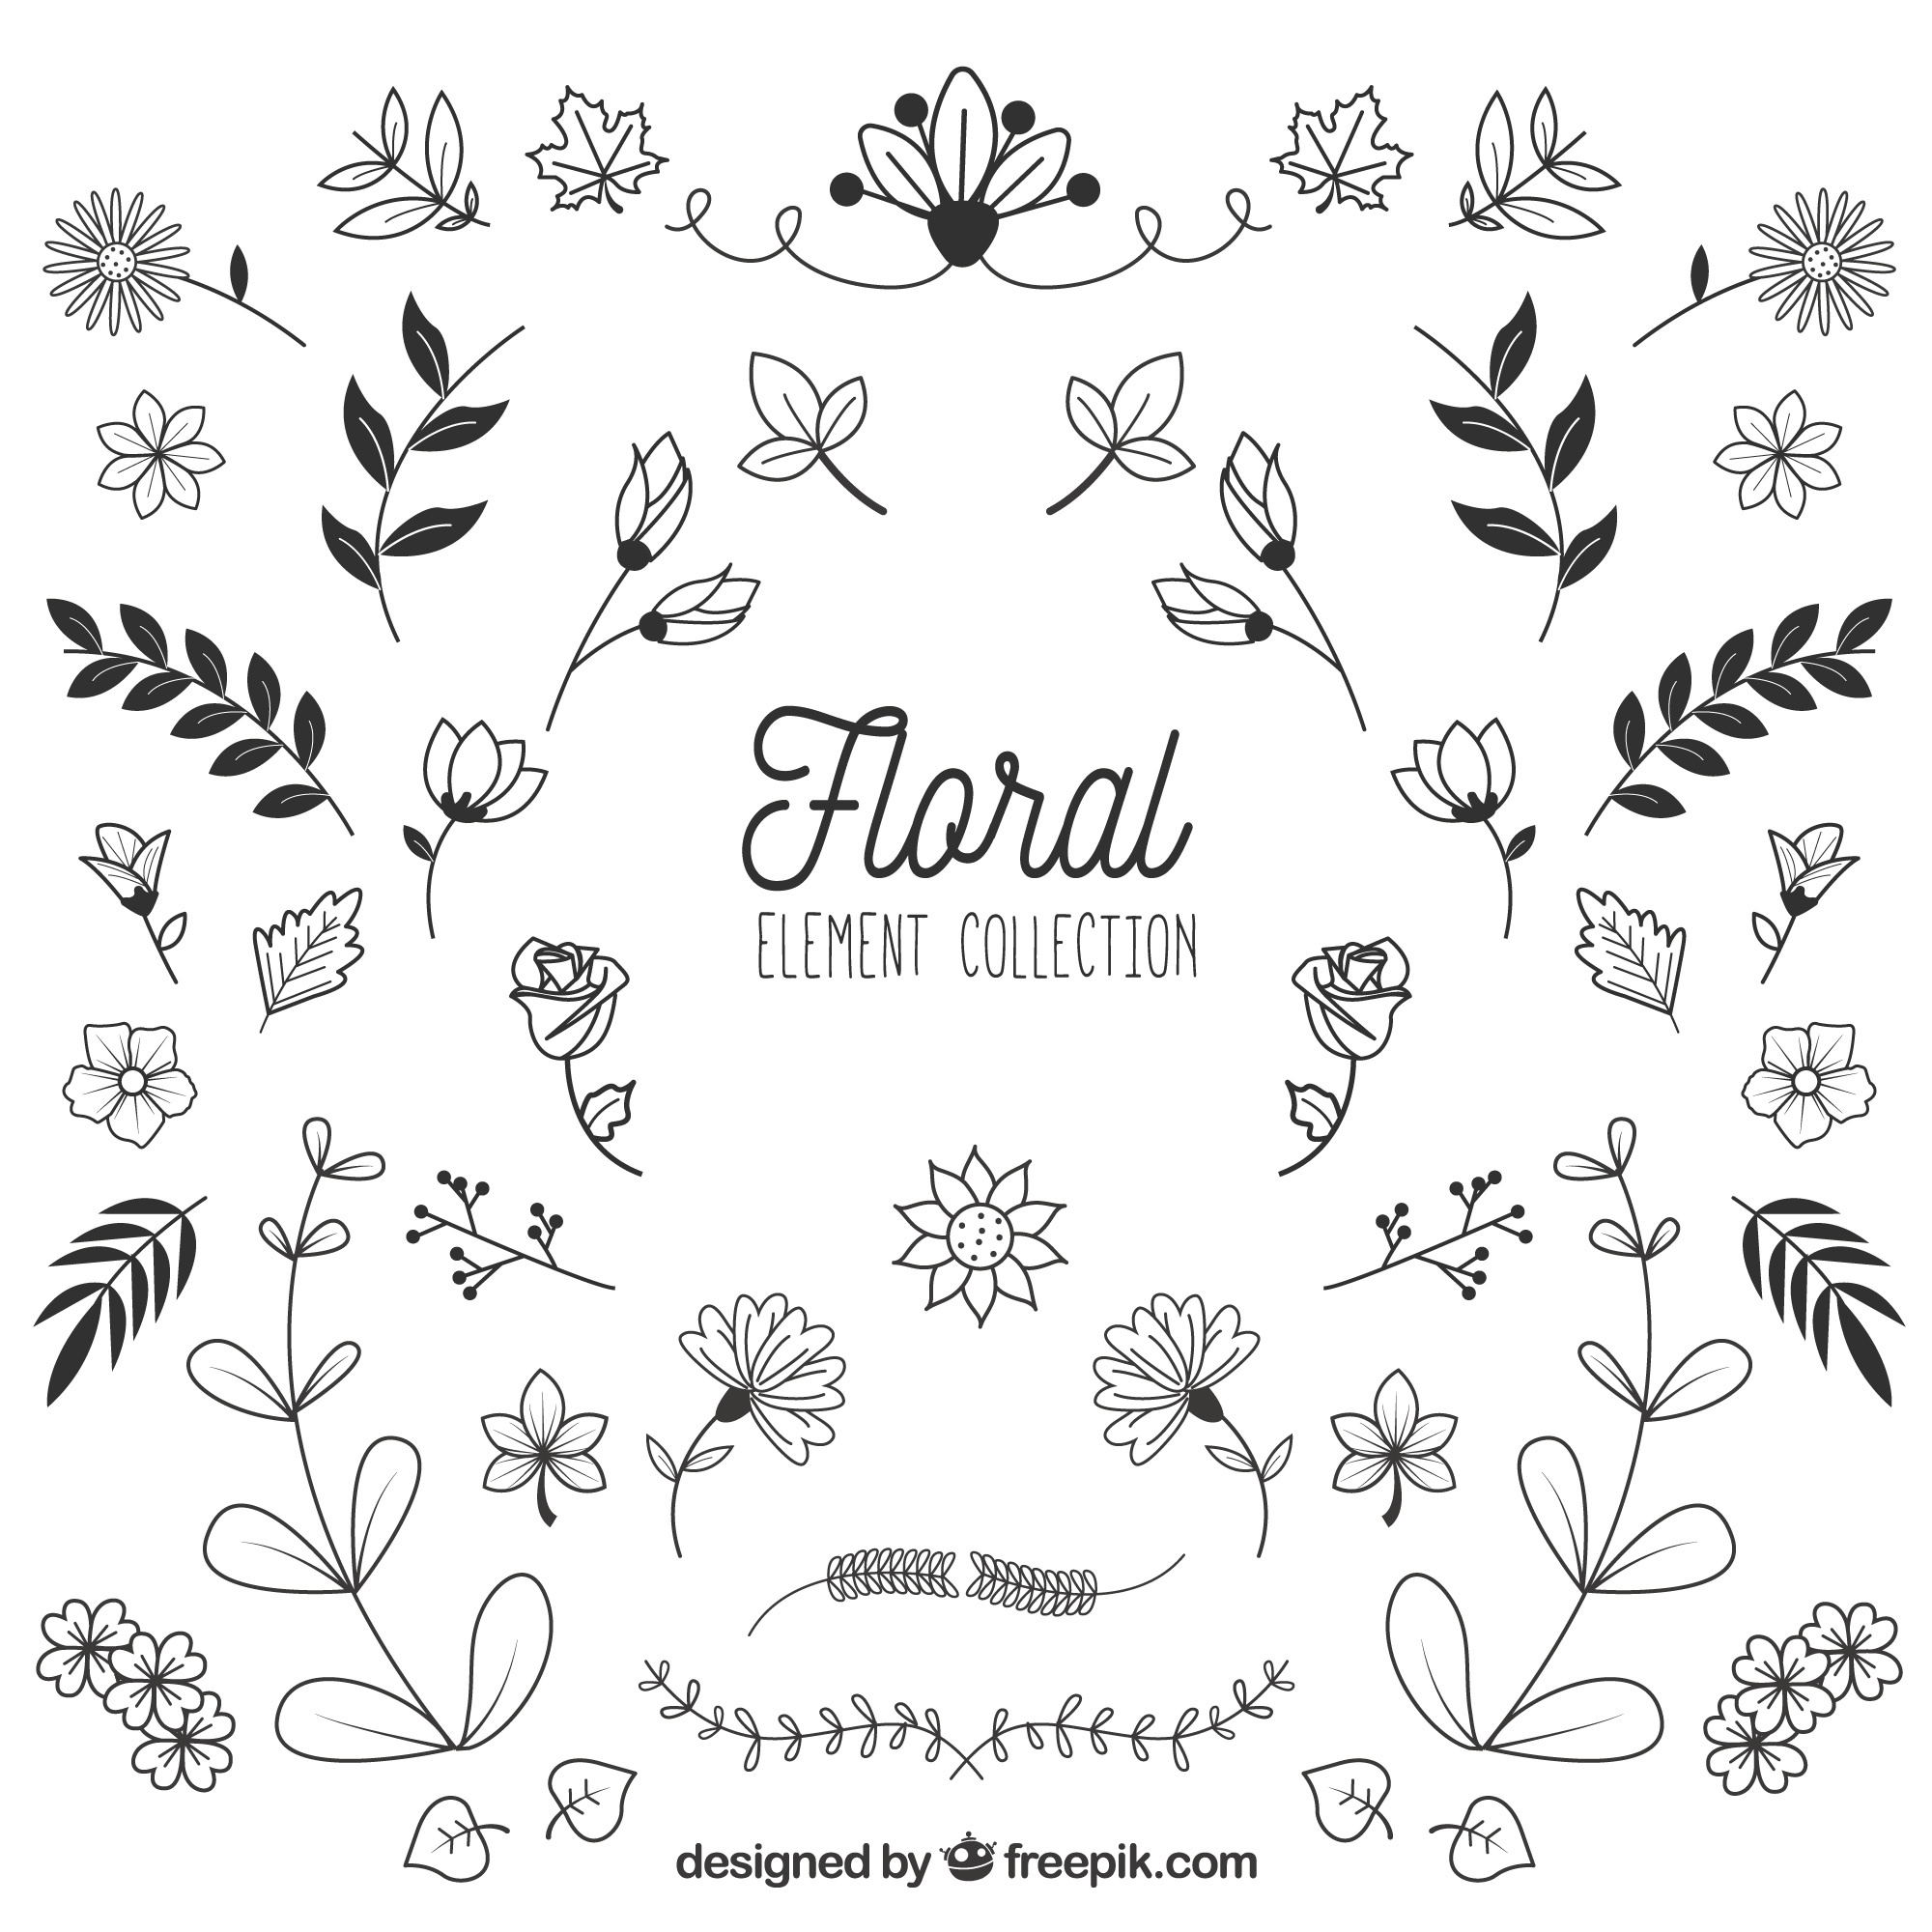 Floral elements collection in hand drawn style